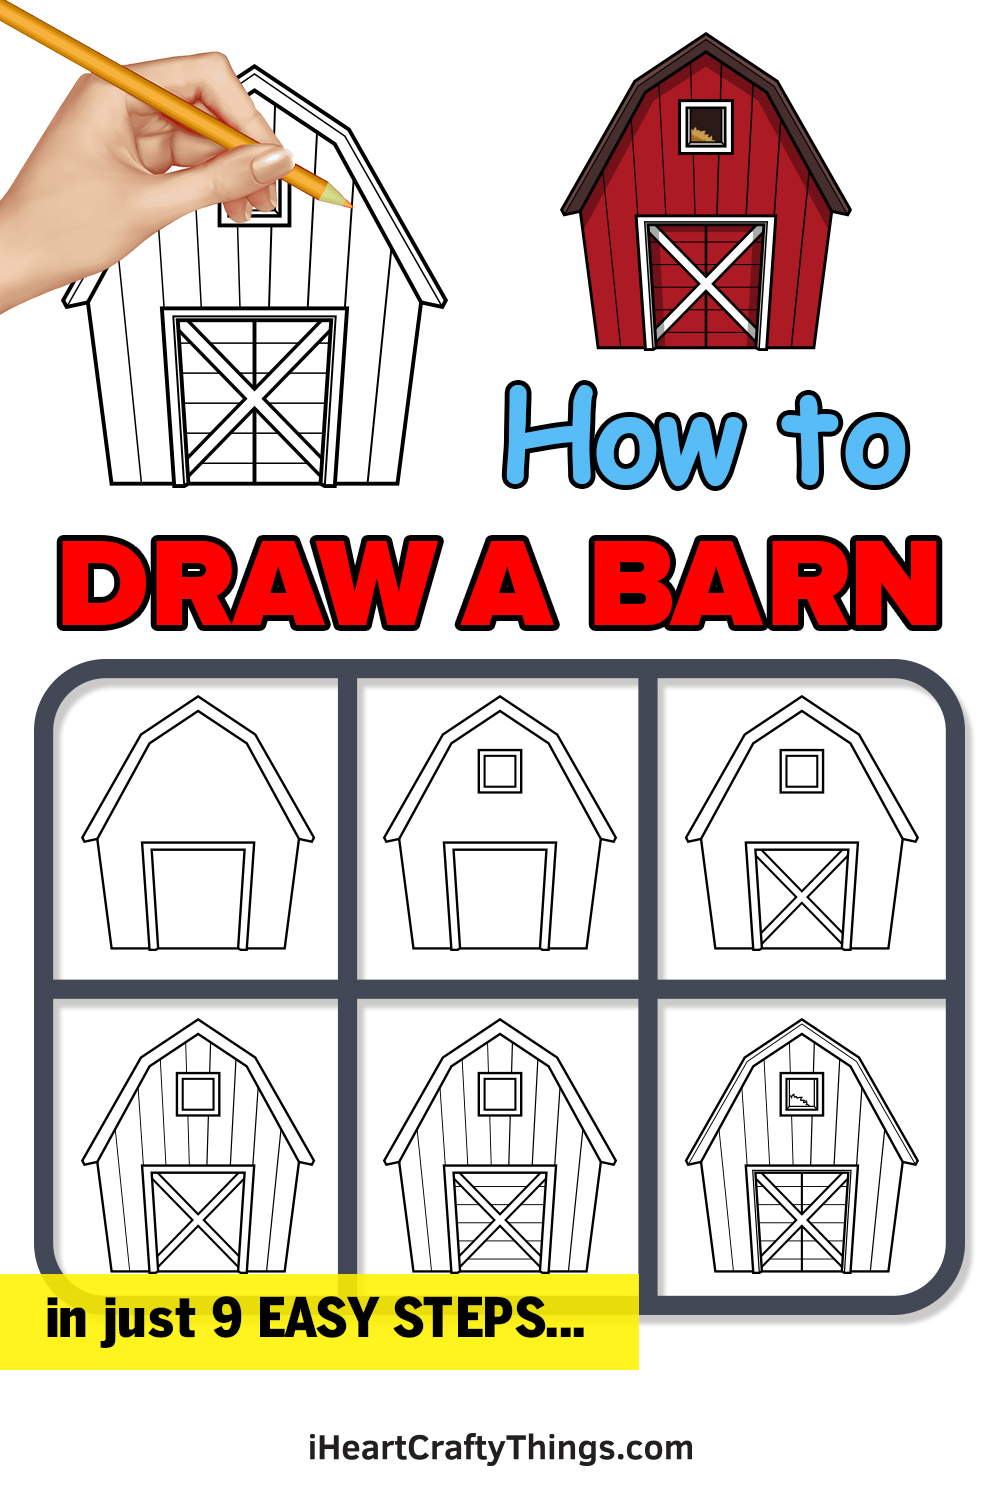 how to draw a barn in 9 easy steps